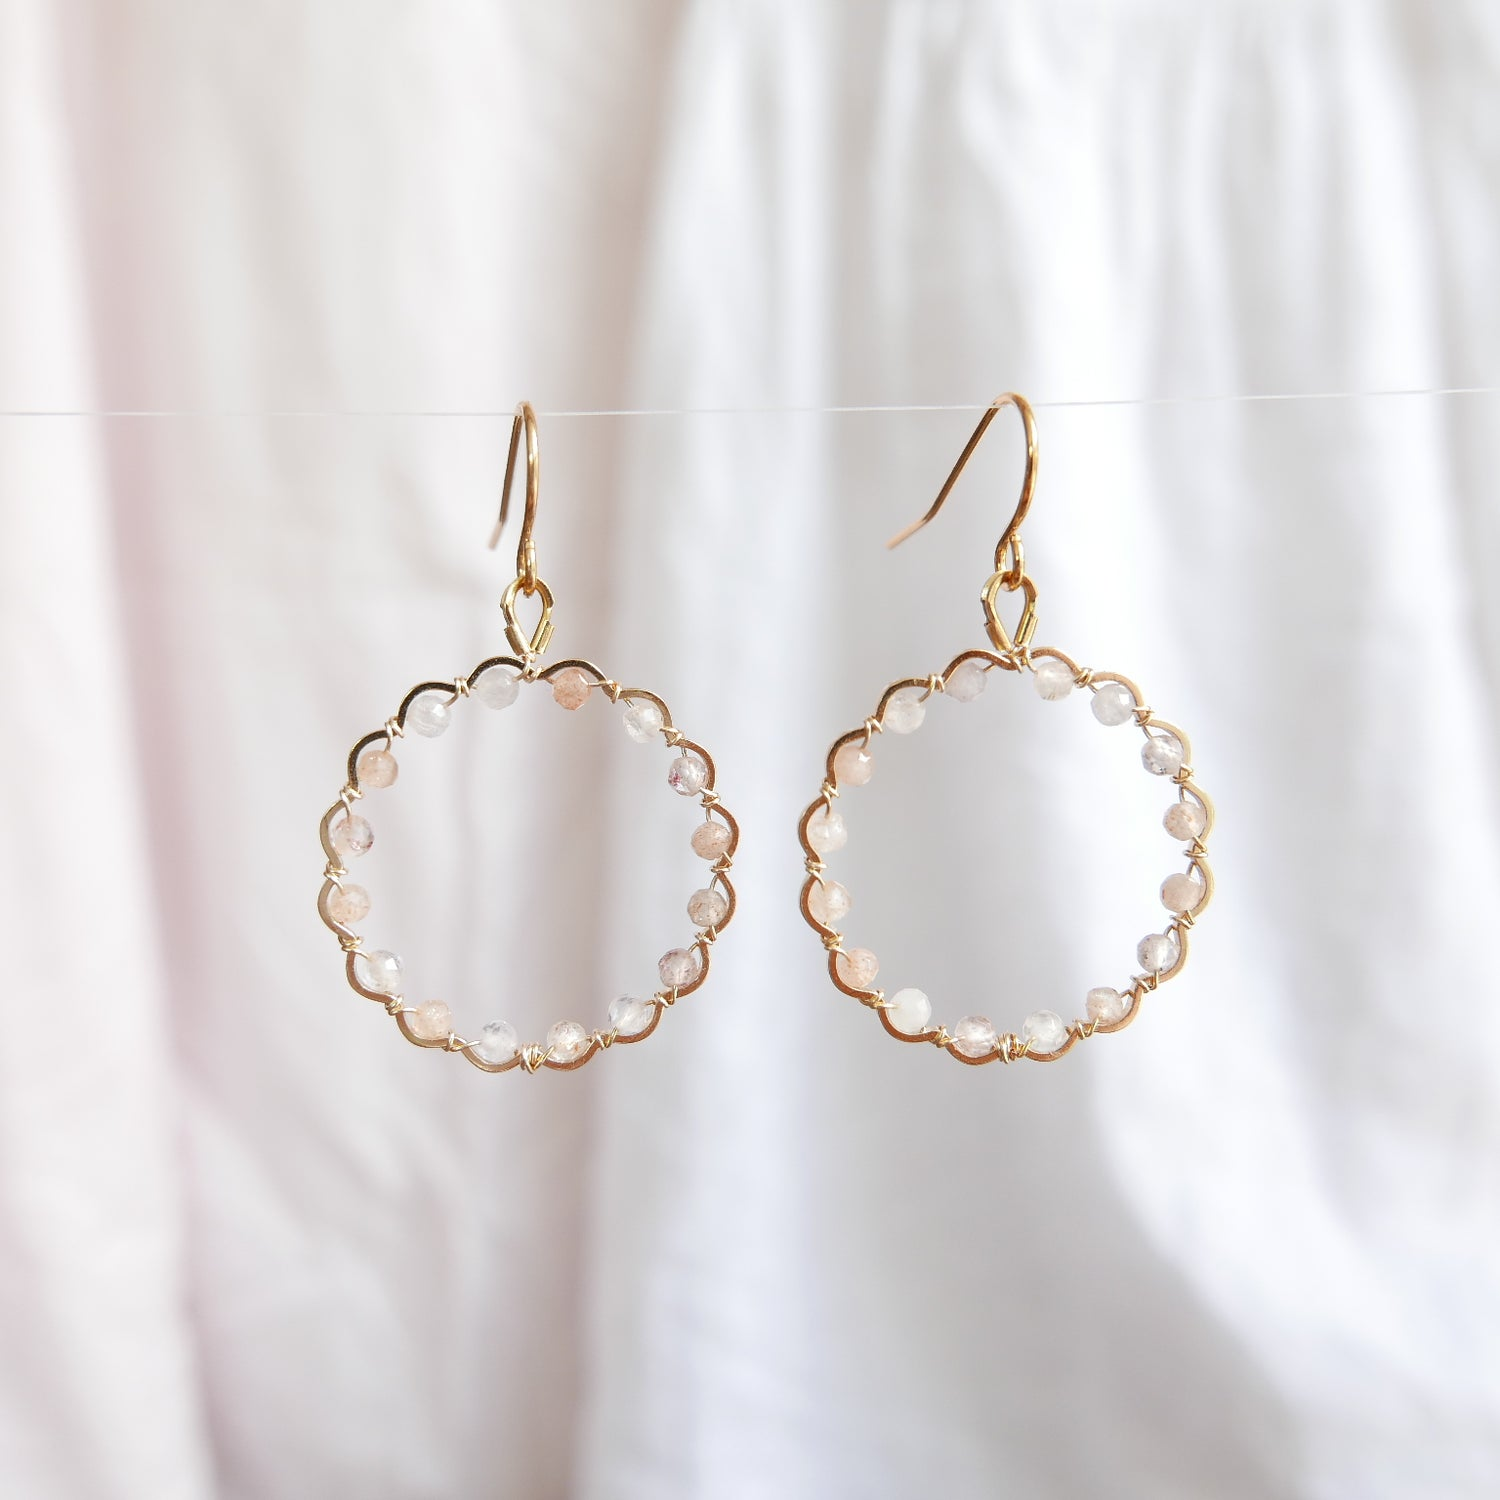 Image of Daylight Earrings